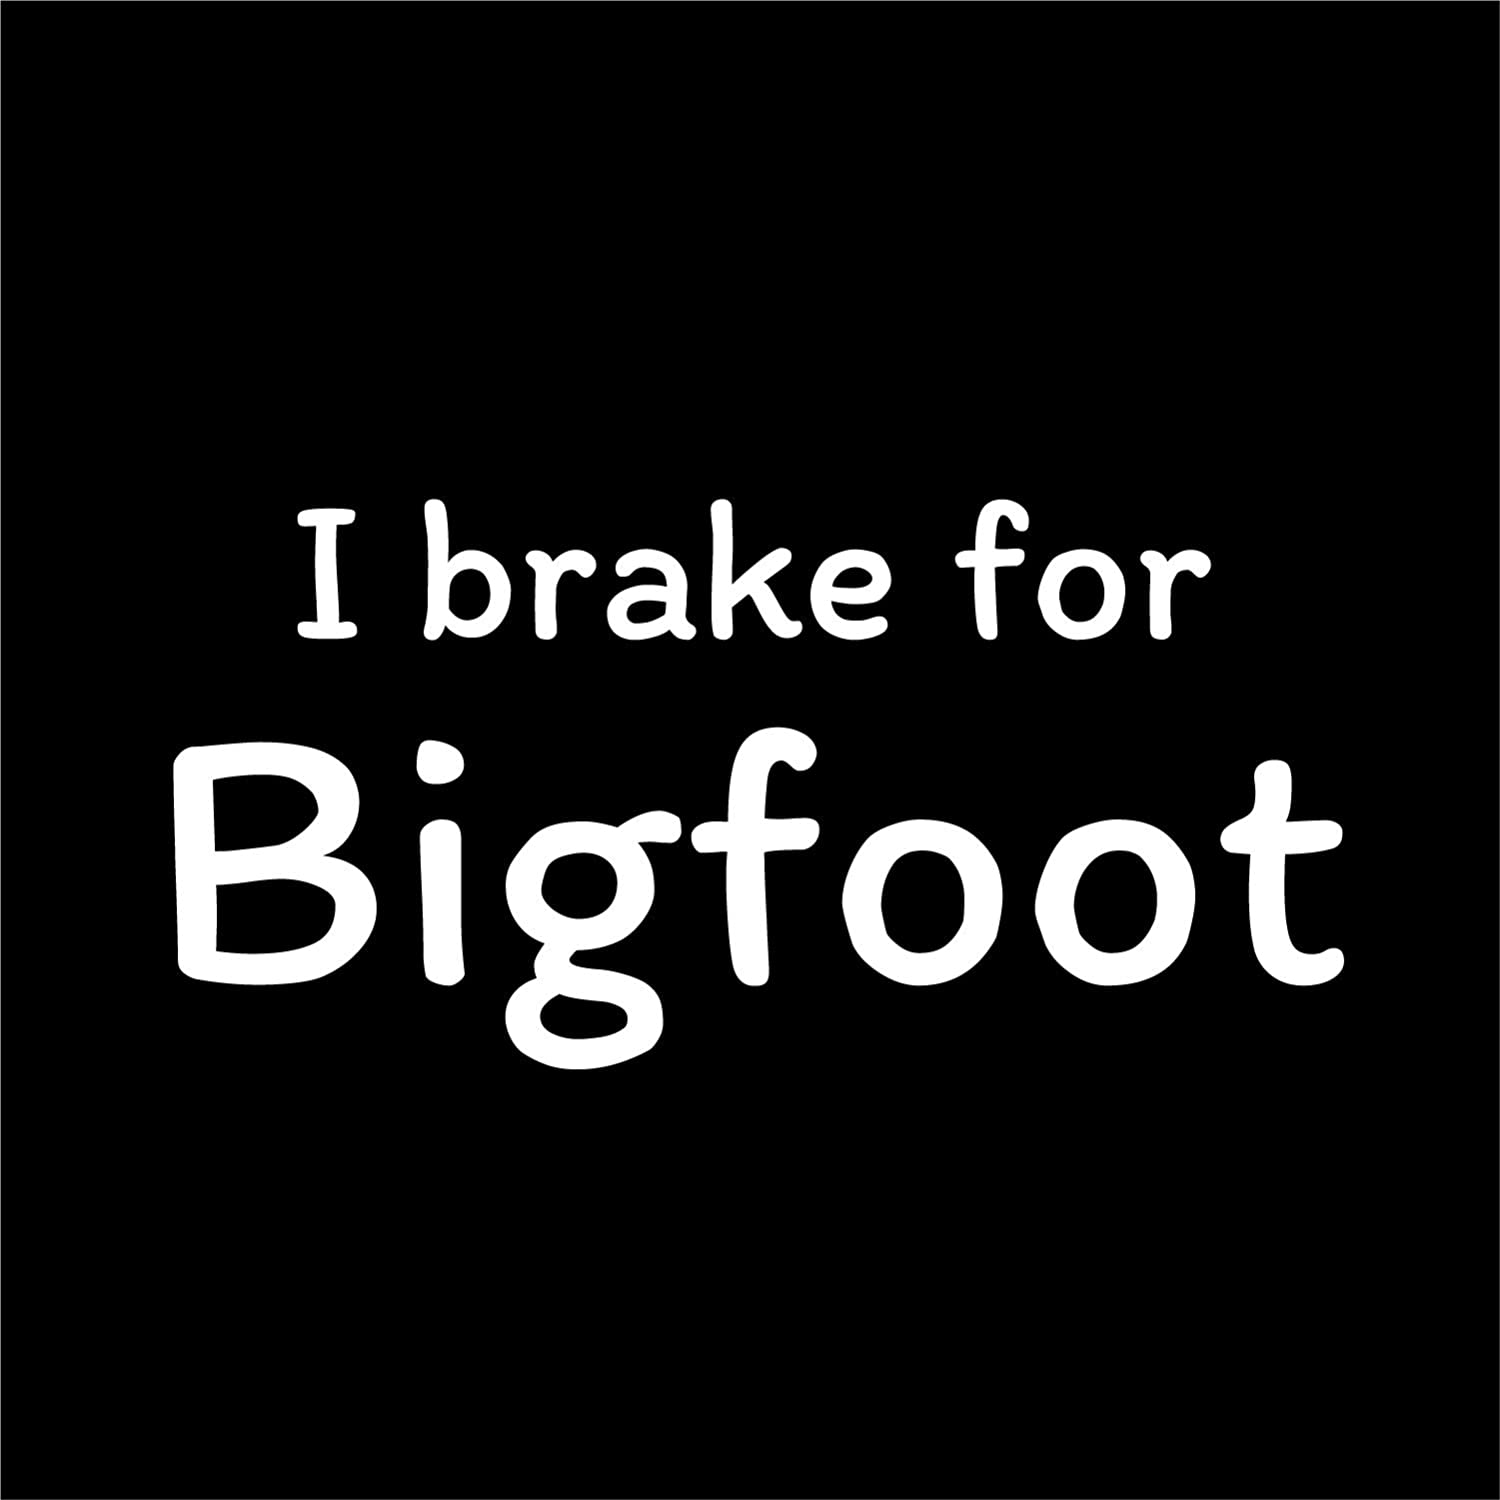 One 7 Inch Decal More Shiz I Brake for Bigfoot Vinyl Decal Sticker MKS0718 Car Truck Van SUV Window Wall Cup Laptop